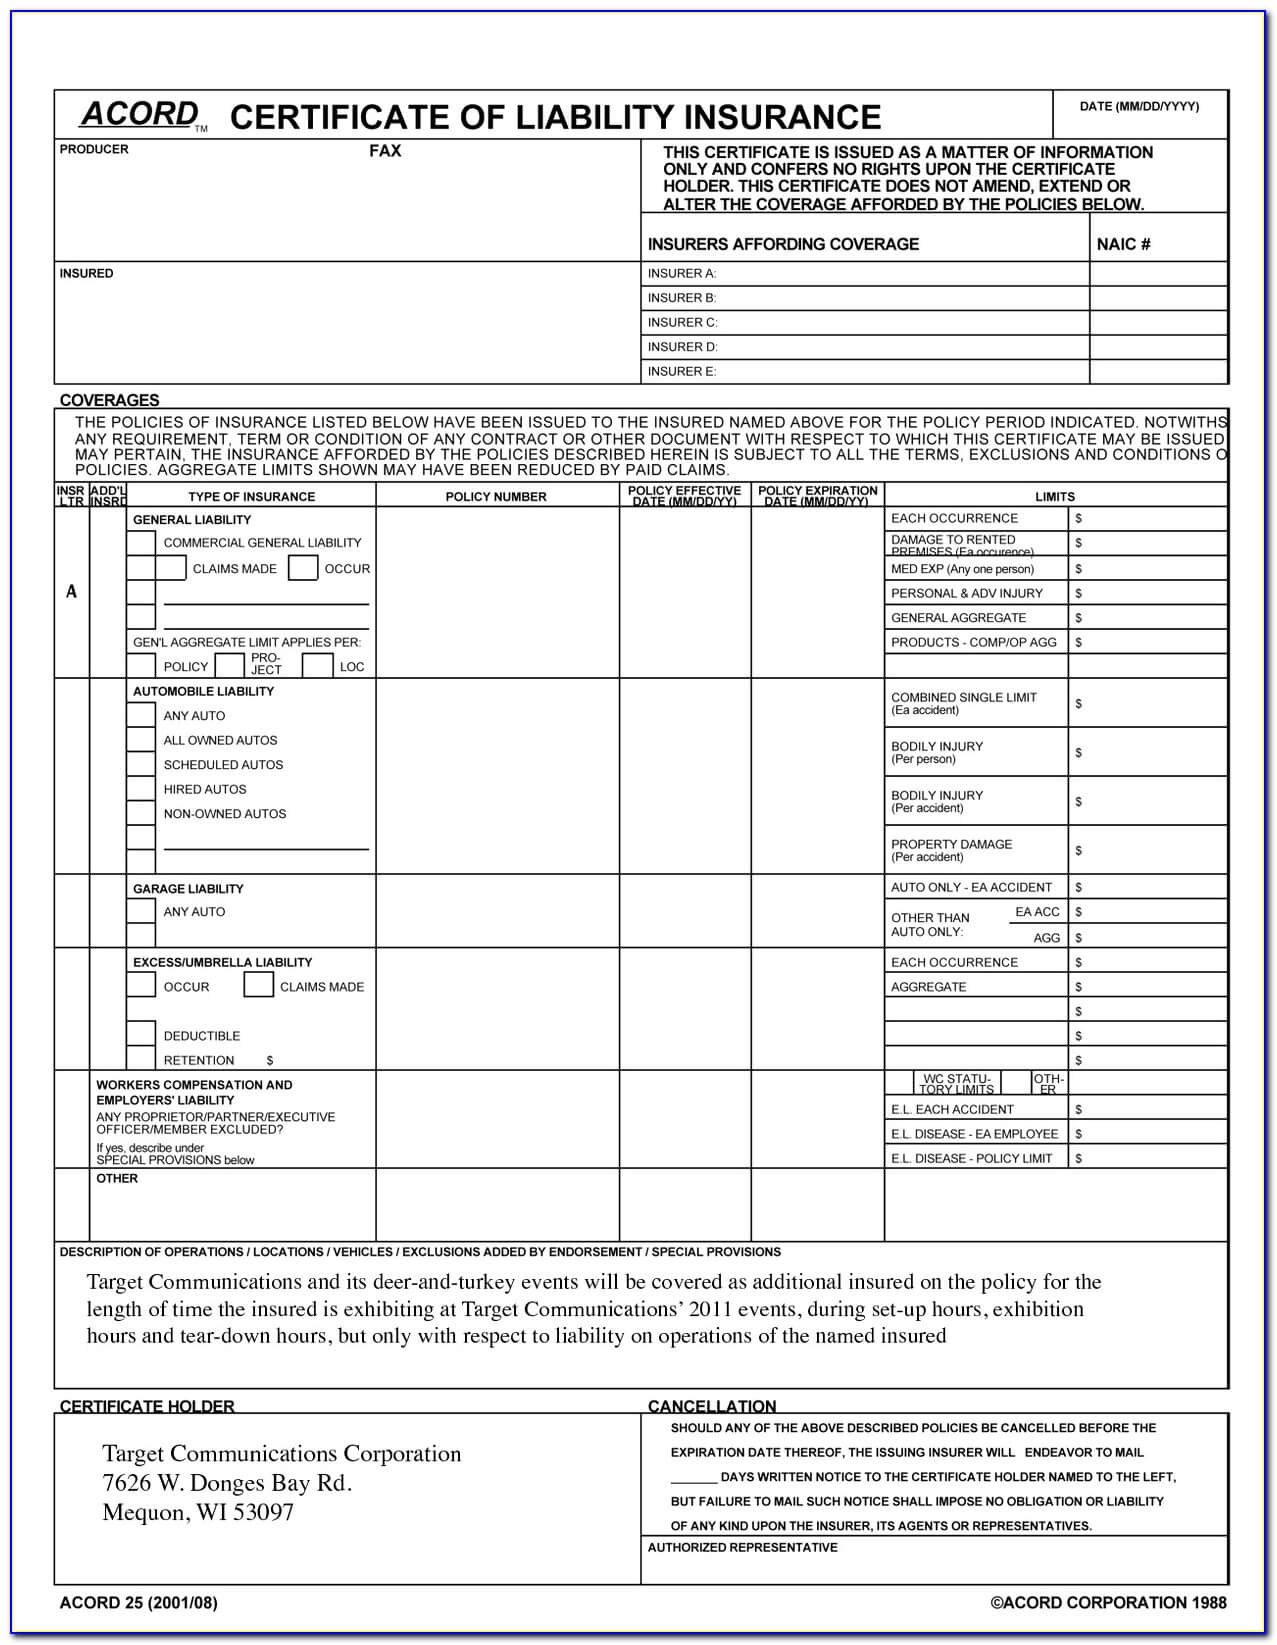 Acord Certificate Of Liability Insurance Template Top Inside Acord Insurance Certificate Template